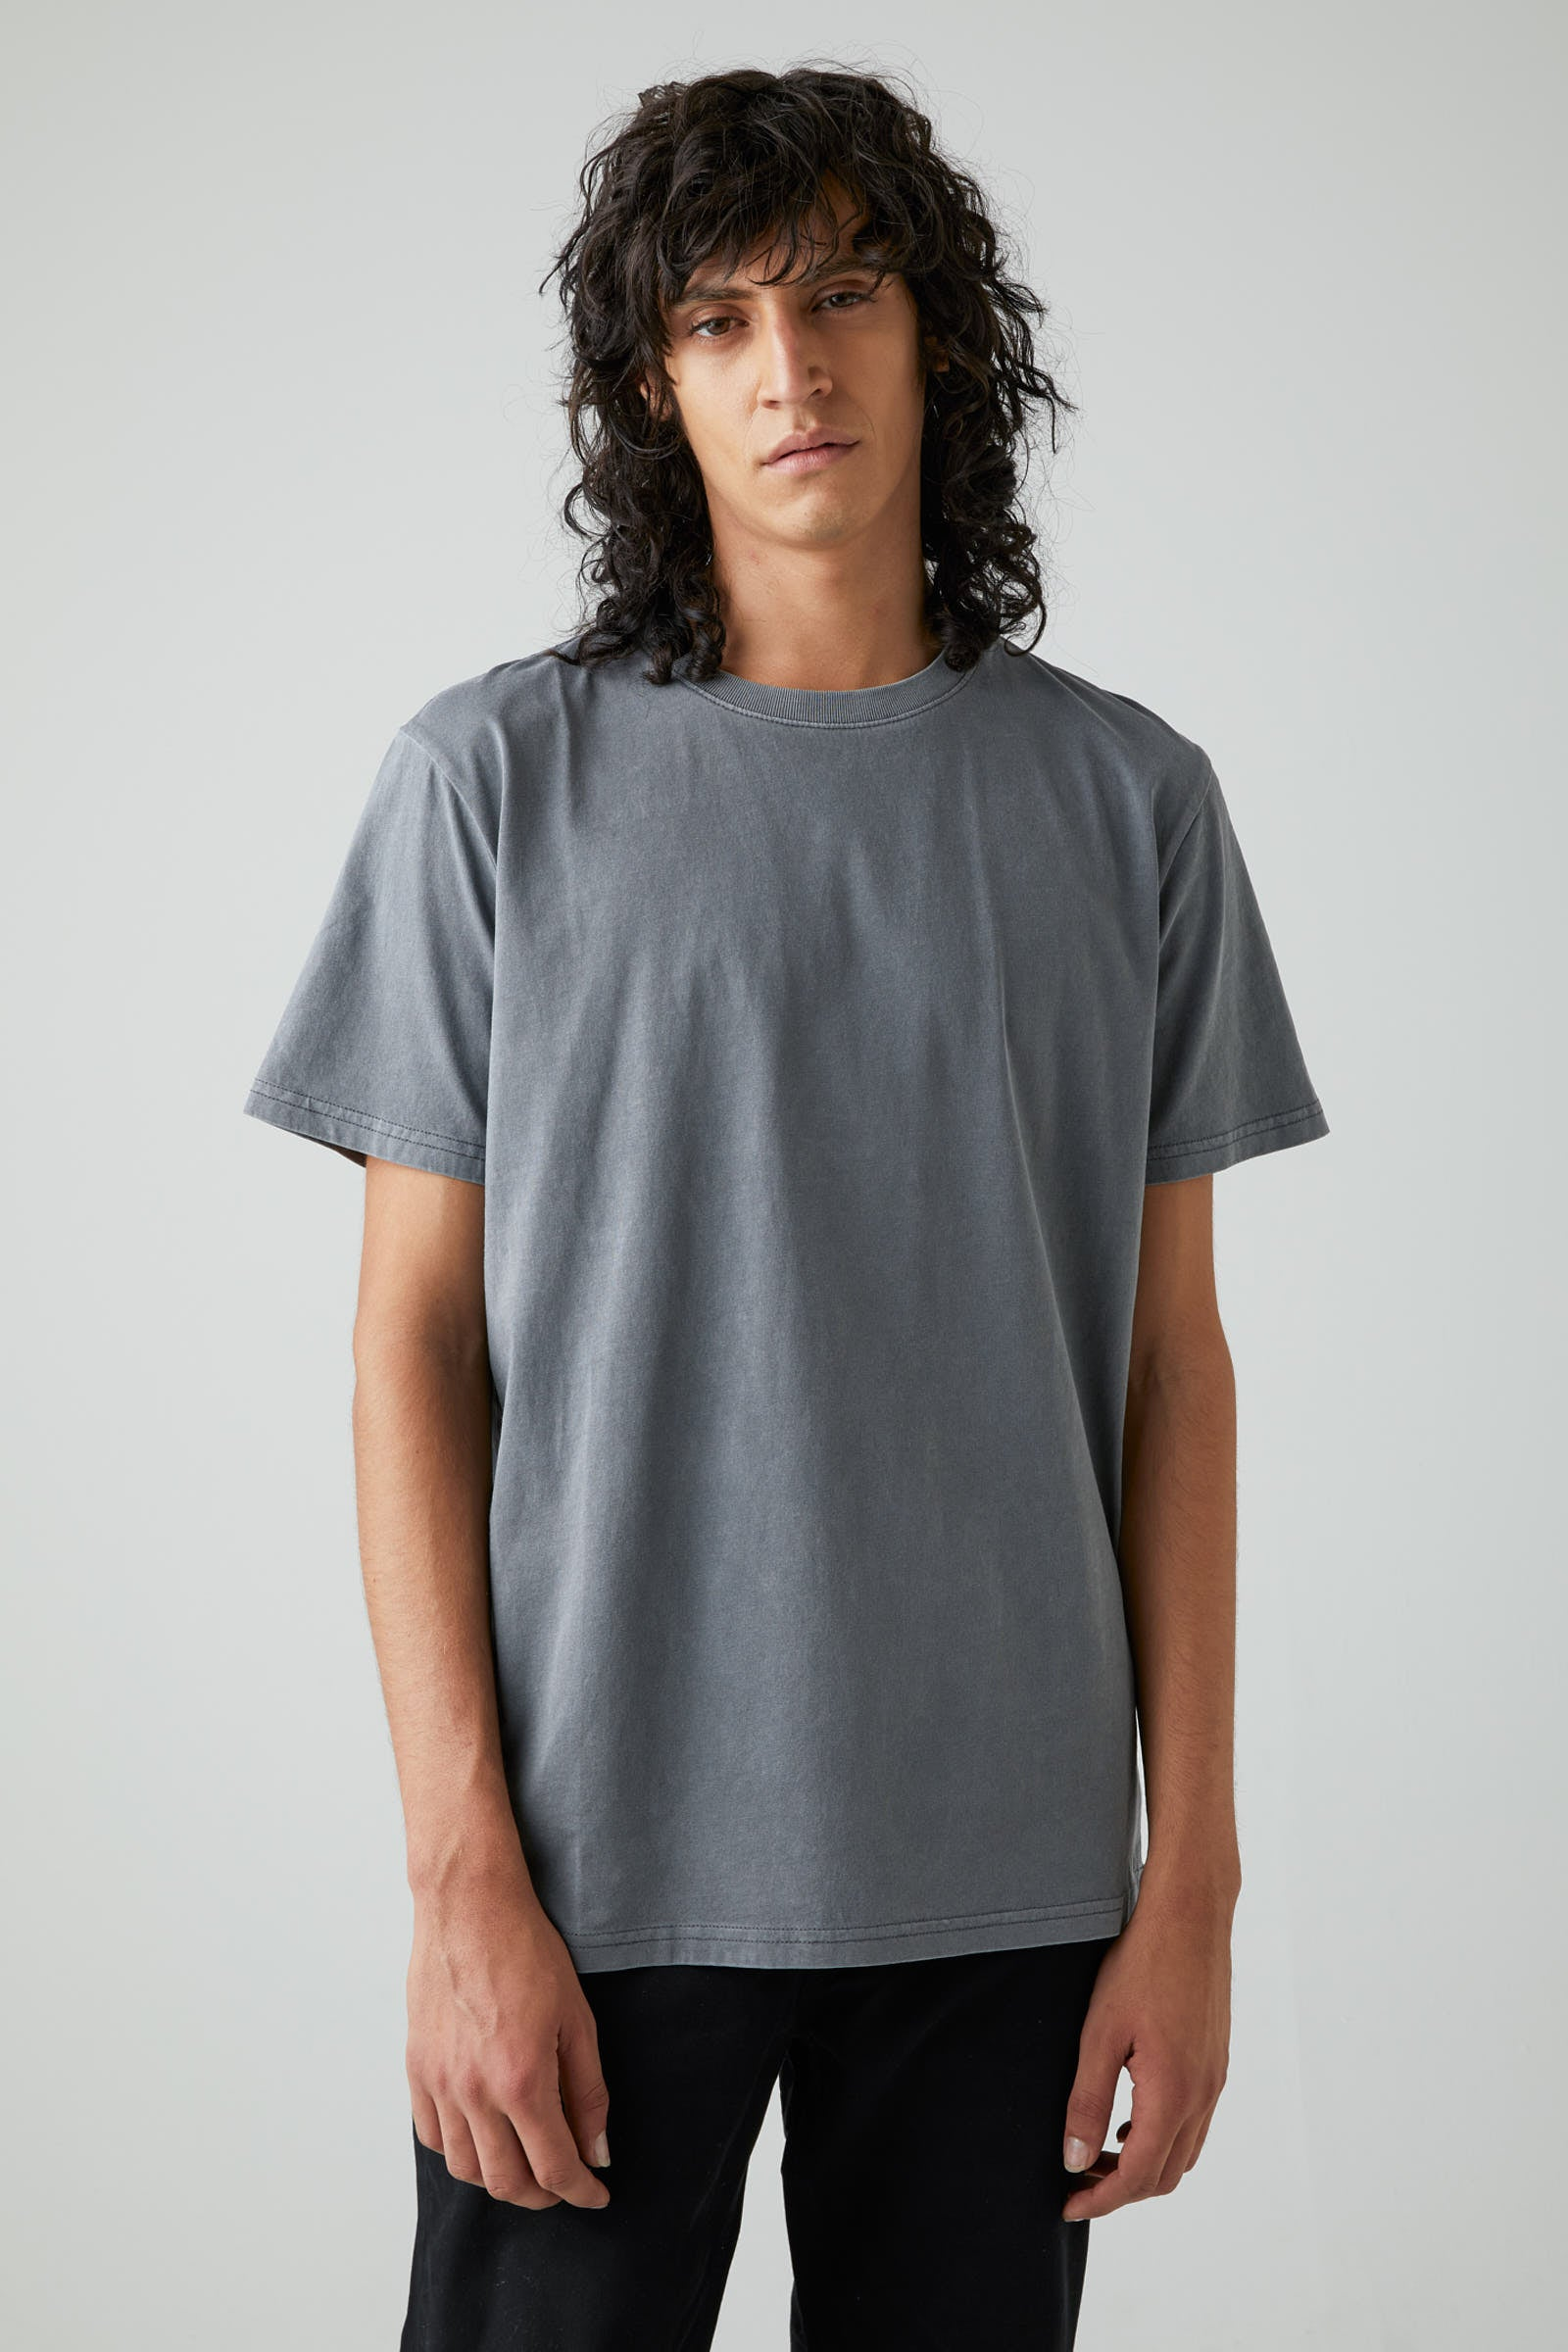 Band Tee - Graphite Grey